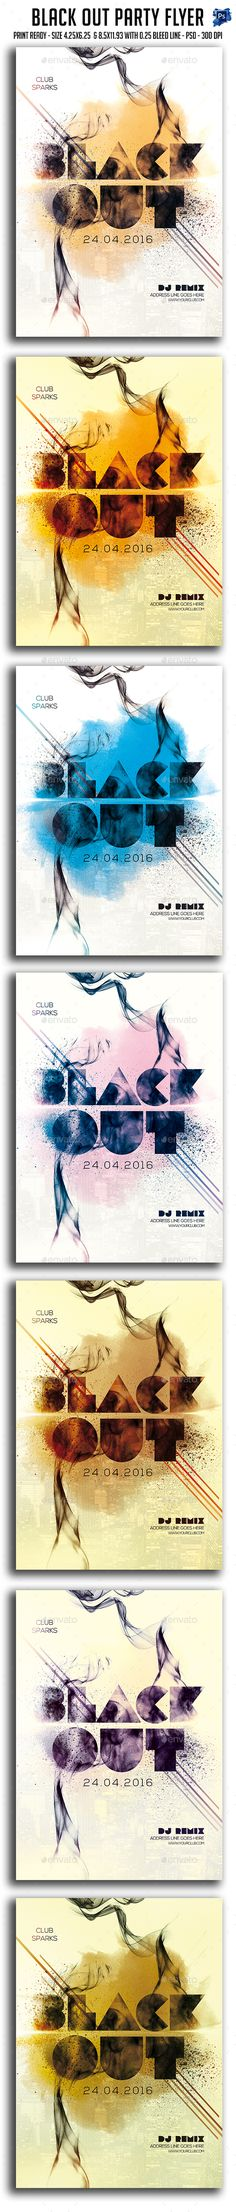 Black Out Party Flyer Template PSD. Download here: http://graphicriver.net/item/black-out-party-flyer-/15838699?ref=ksioks